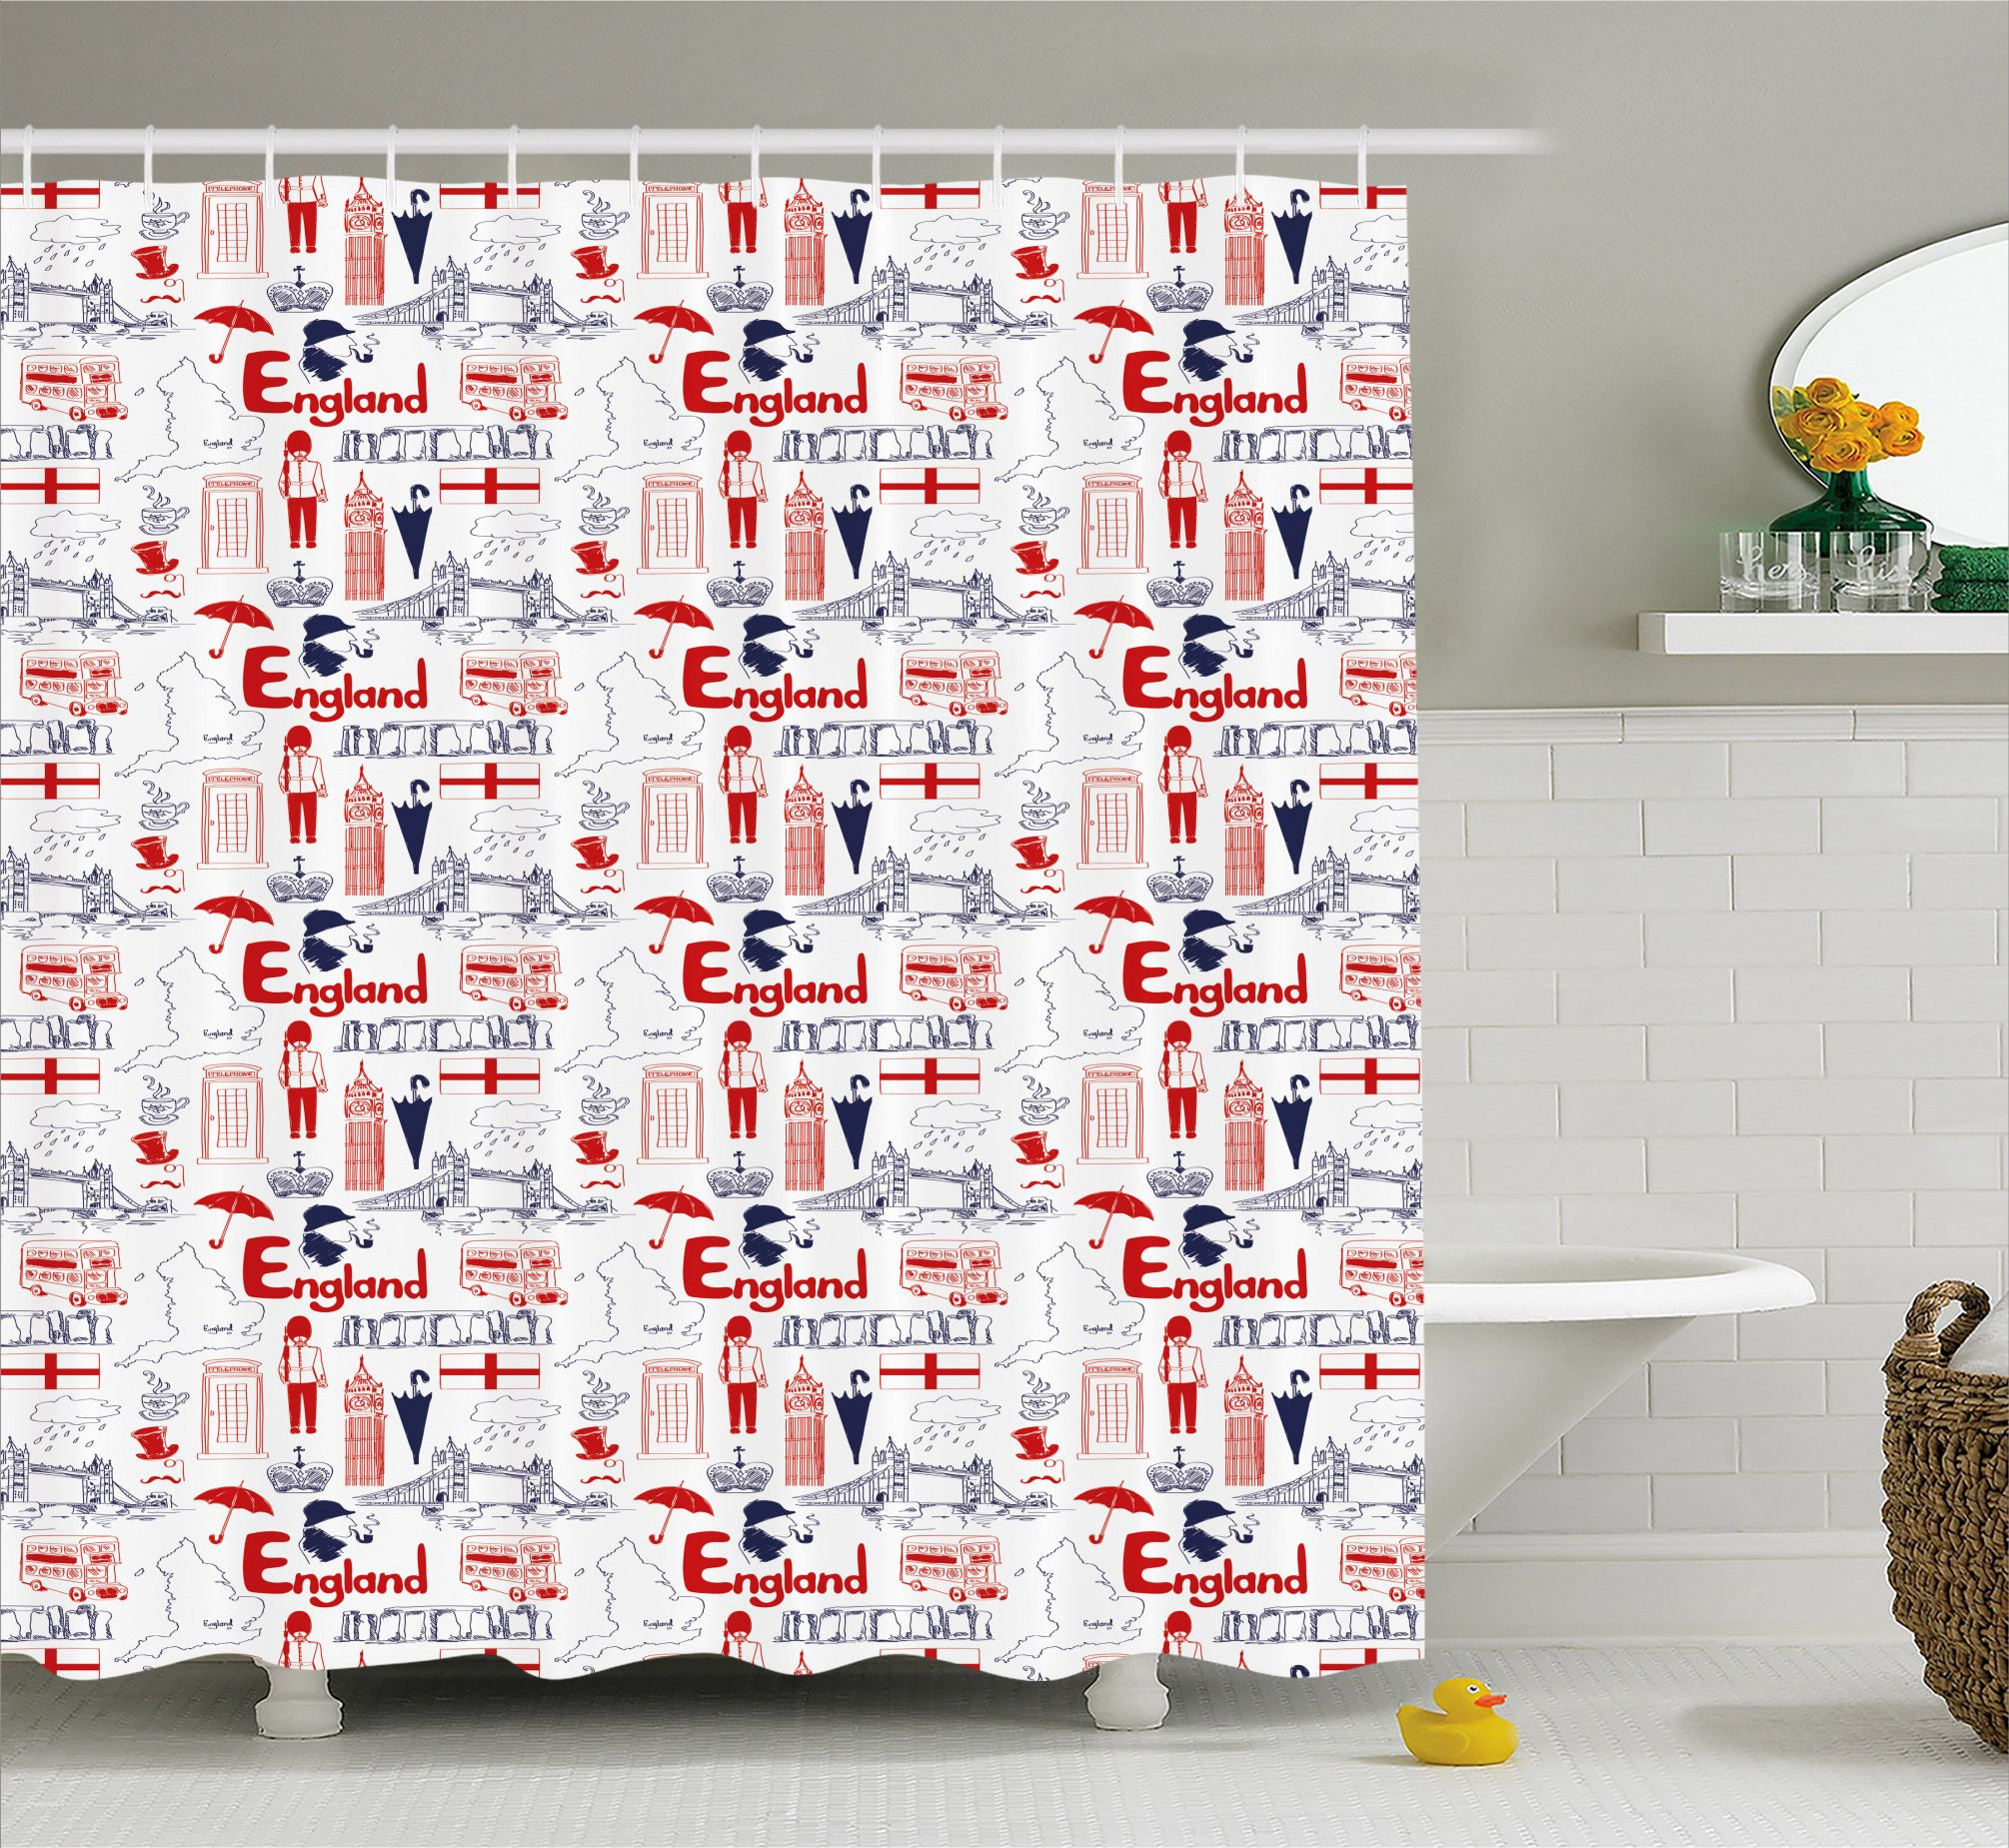 British Culture Sketch Shower Curtain French Country Bathroom Unique Shower Curtain Country Bathroom Designs